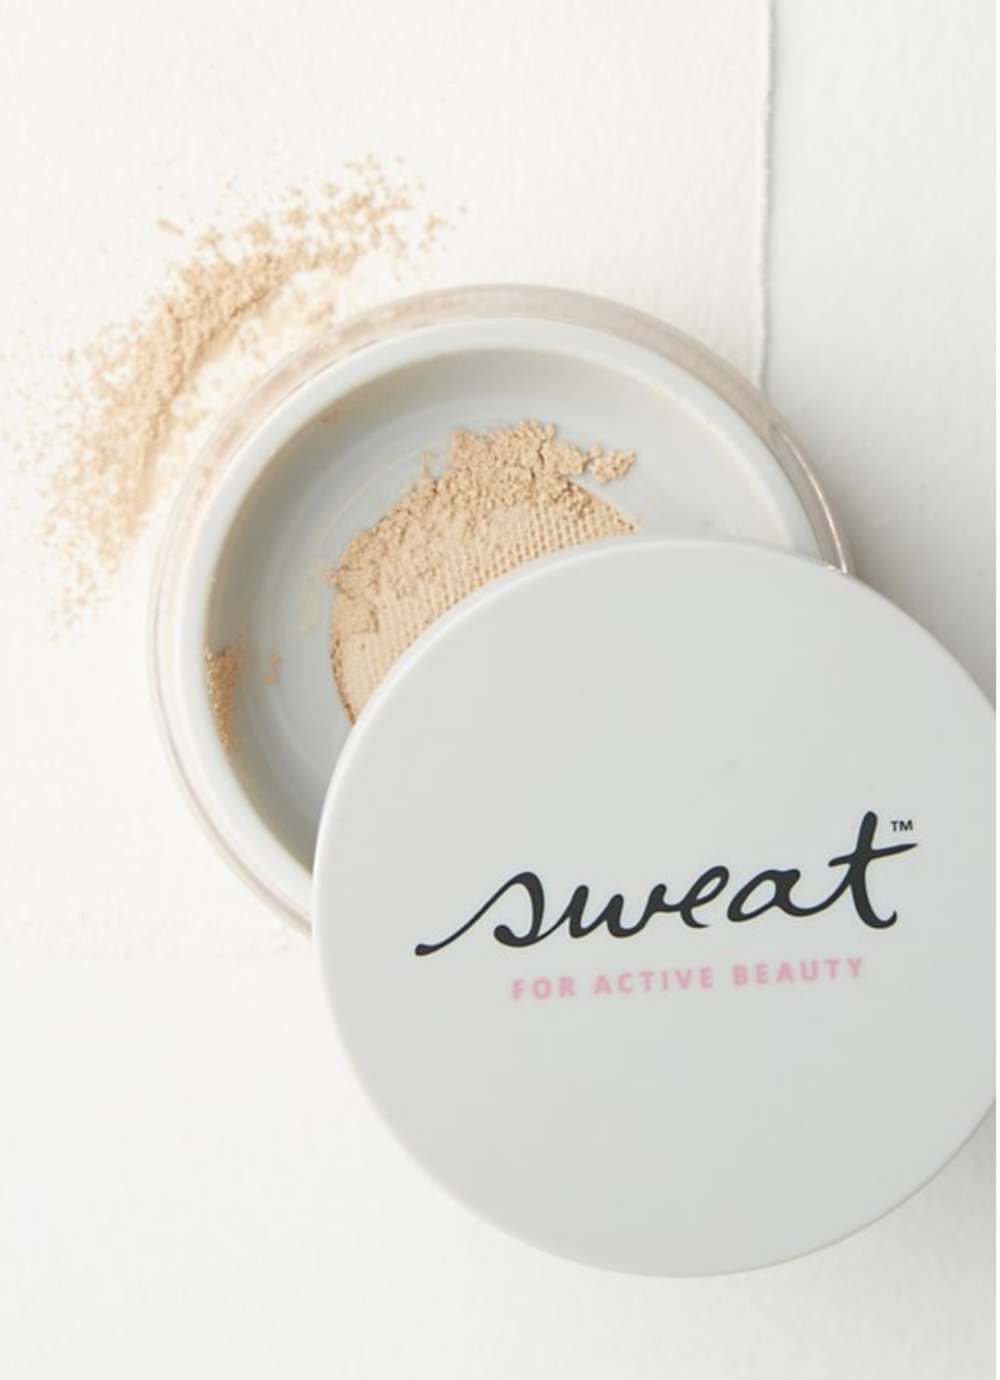 "1.  Sweat Mineral Foundation Power Jar SPF 30 : Never use the phrase ""My face is melting!"" ever again. Founded and tested by professional athletes and decorated Olympians, Sweat is a multi-functioning, high-performing cosmetics engineered to nourish active skin with Vitamin # and sun-ready zinc oxide."